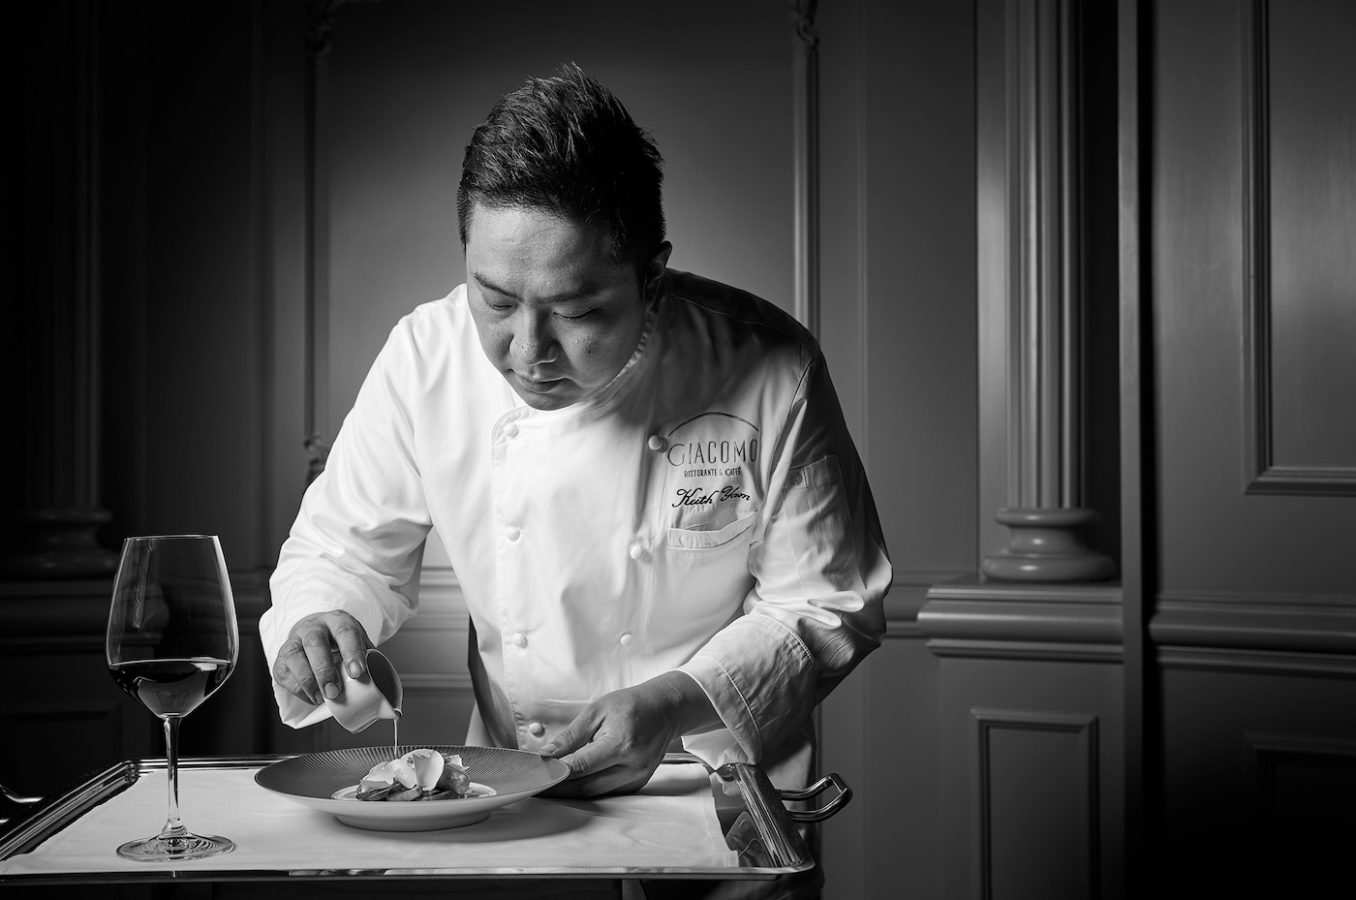 Chef Keith Yam of Giacomo on His Undying Passion and Commitment to Italian Food